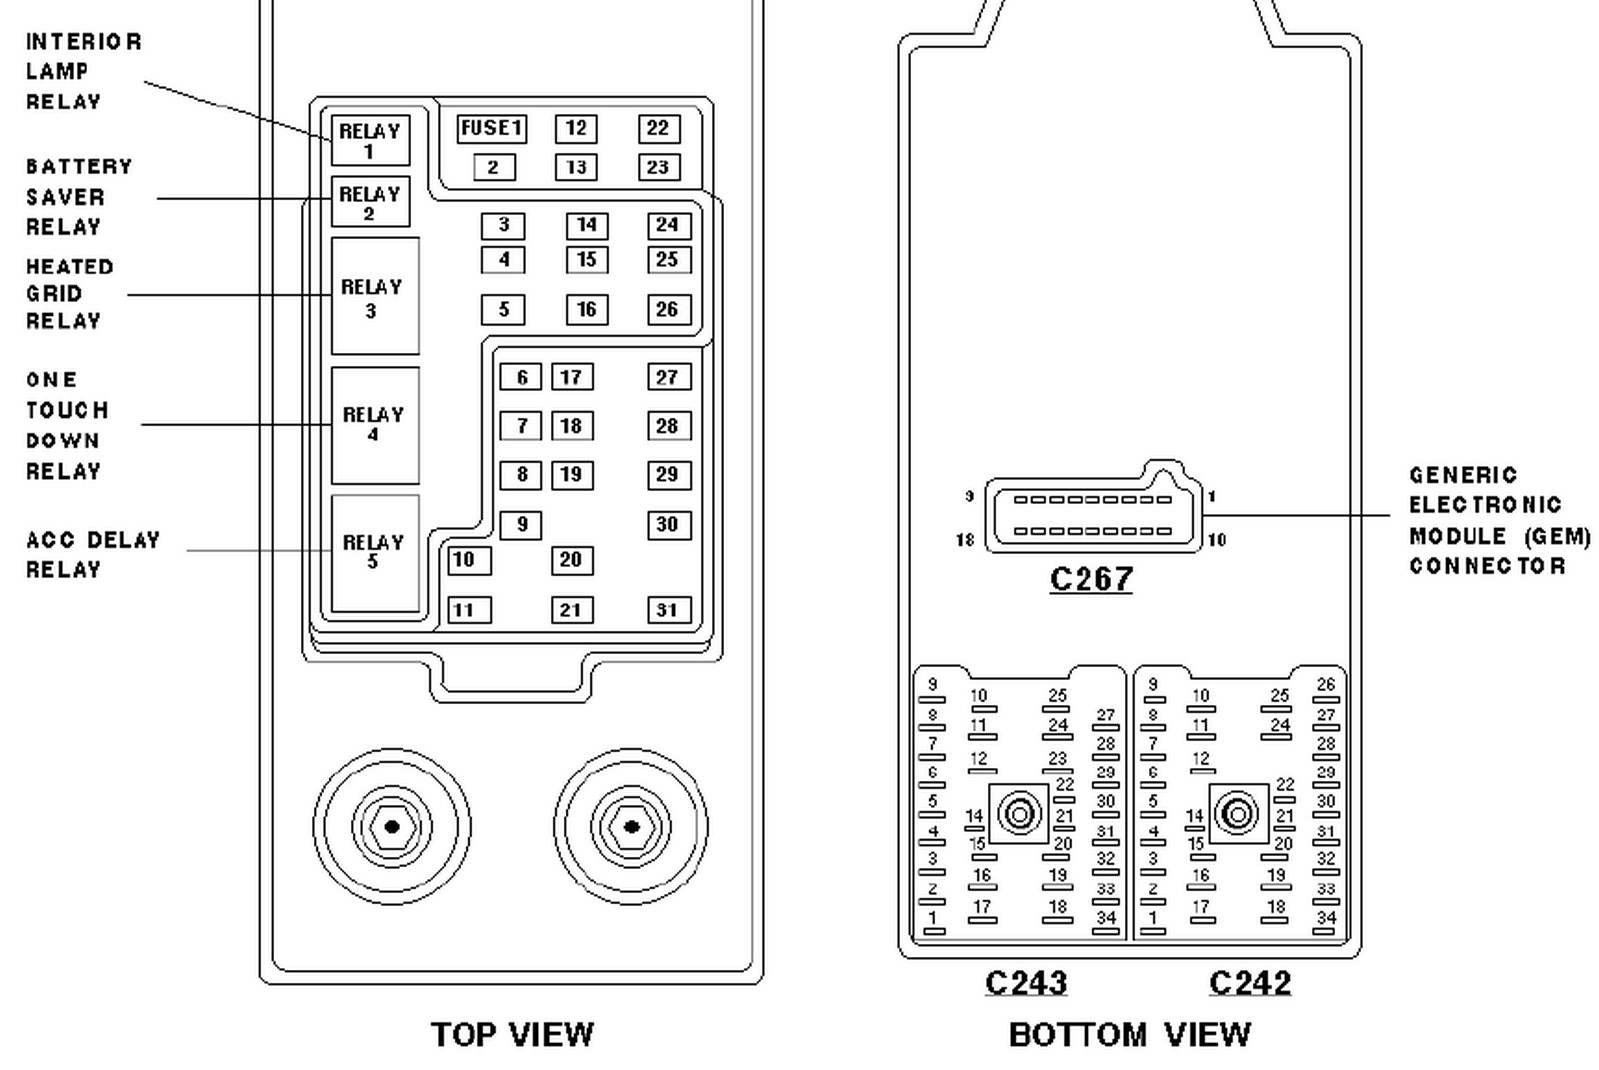 1997 Ford Expedition Fuse Box Diagram Image Details Ford Truck F 750 Fuse  Diagram 1997 Ford F750 Fuse Box